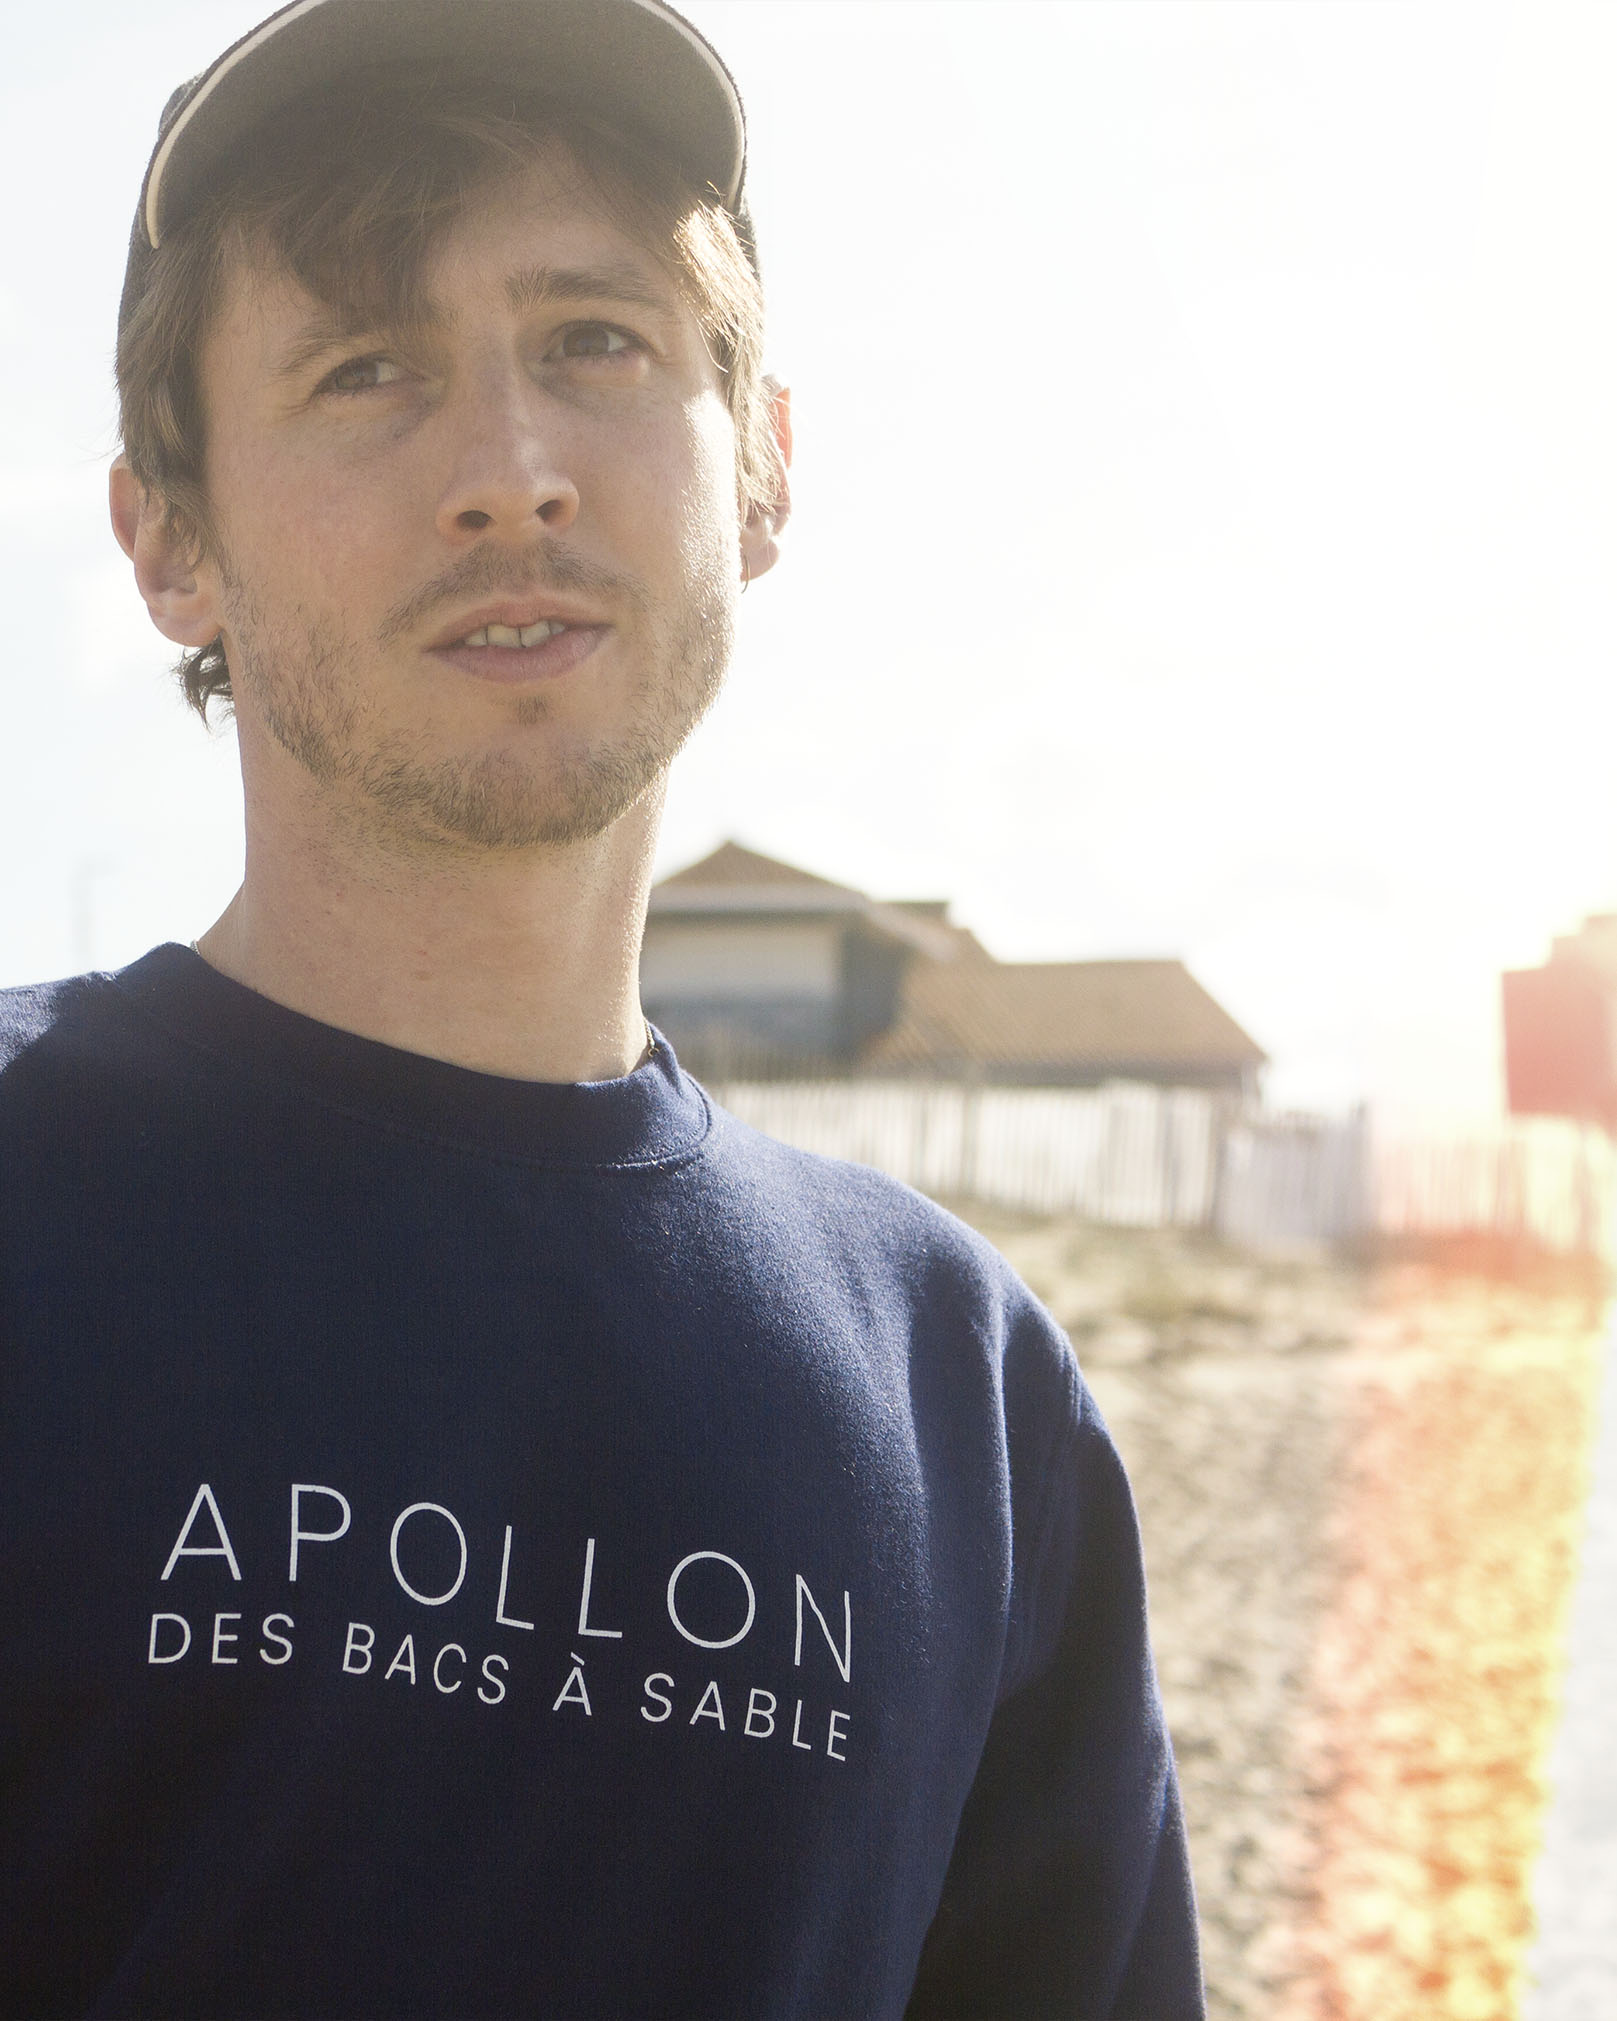 Sweat-shirt APOLLON DES BACS À SABLE (Allan Vermeer)